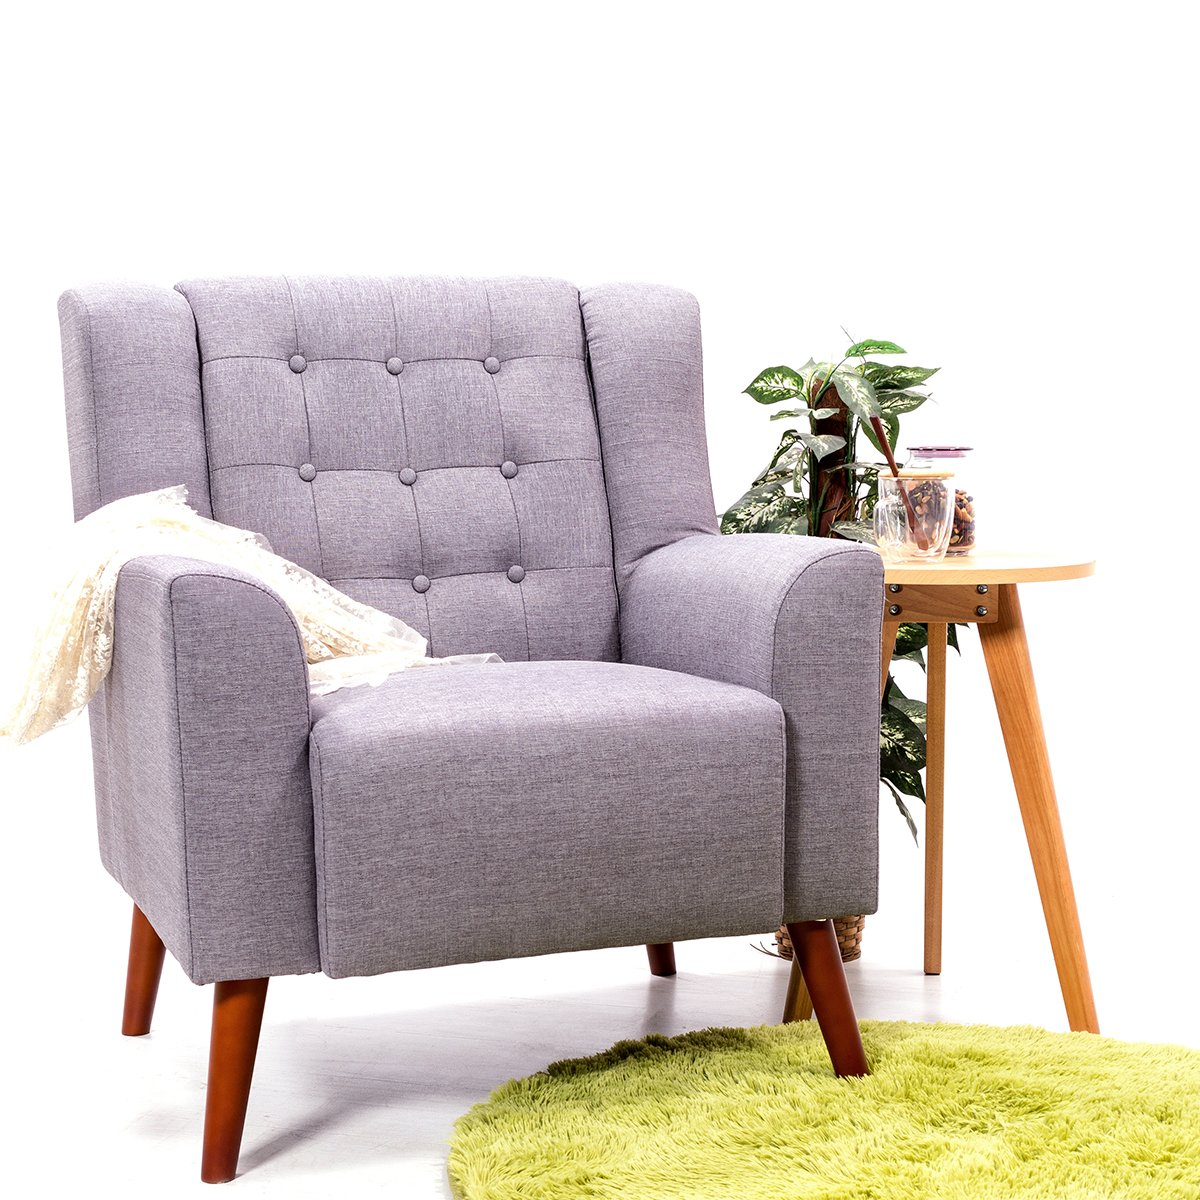 Linen Fabric Tub Chair Armchair Dining Living Room Office Reception YX227 panana Songtree